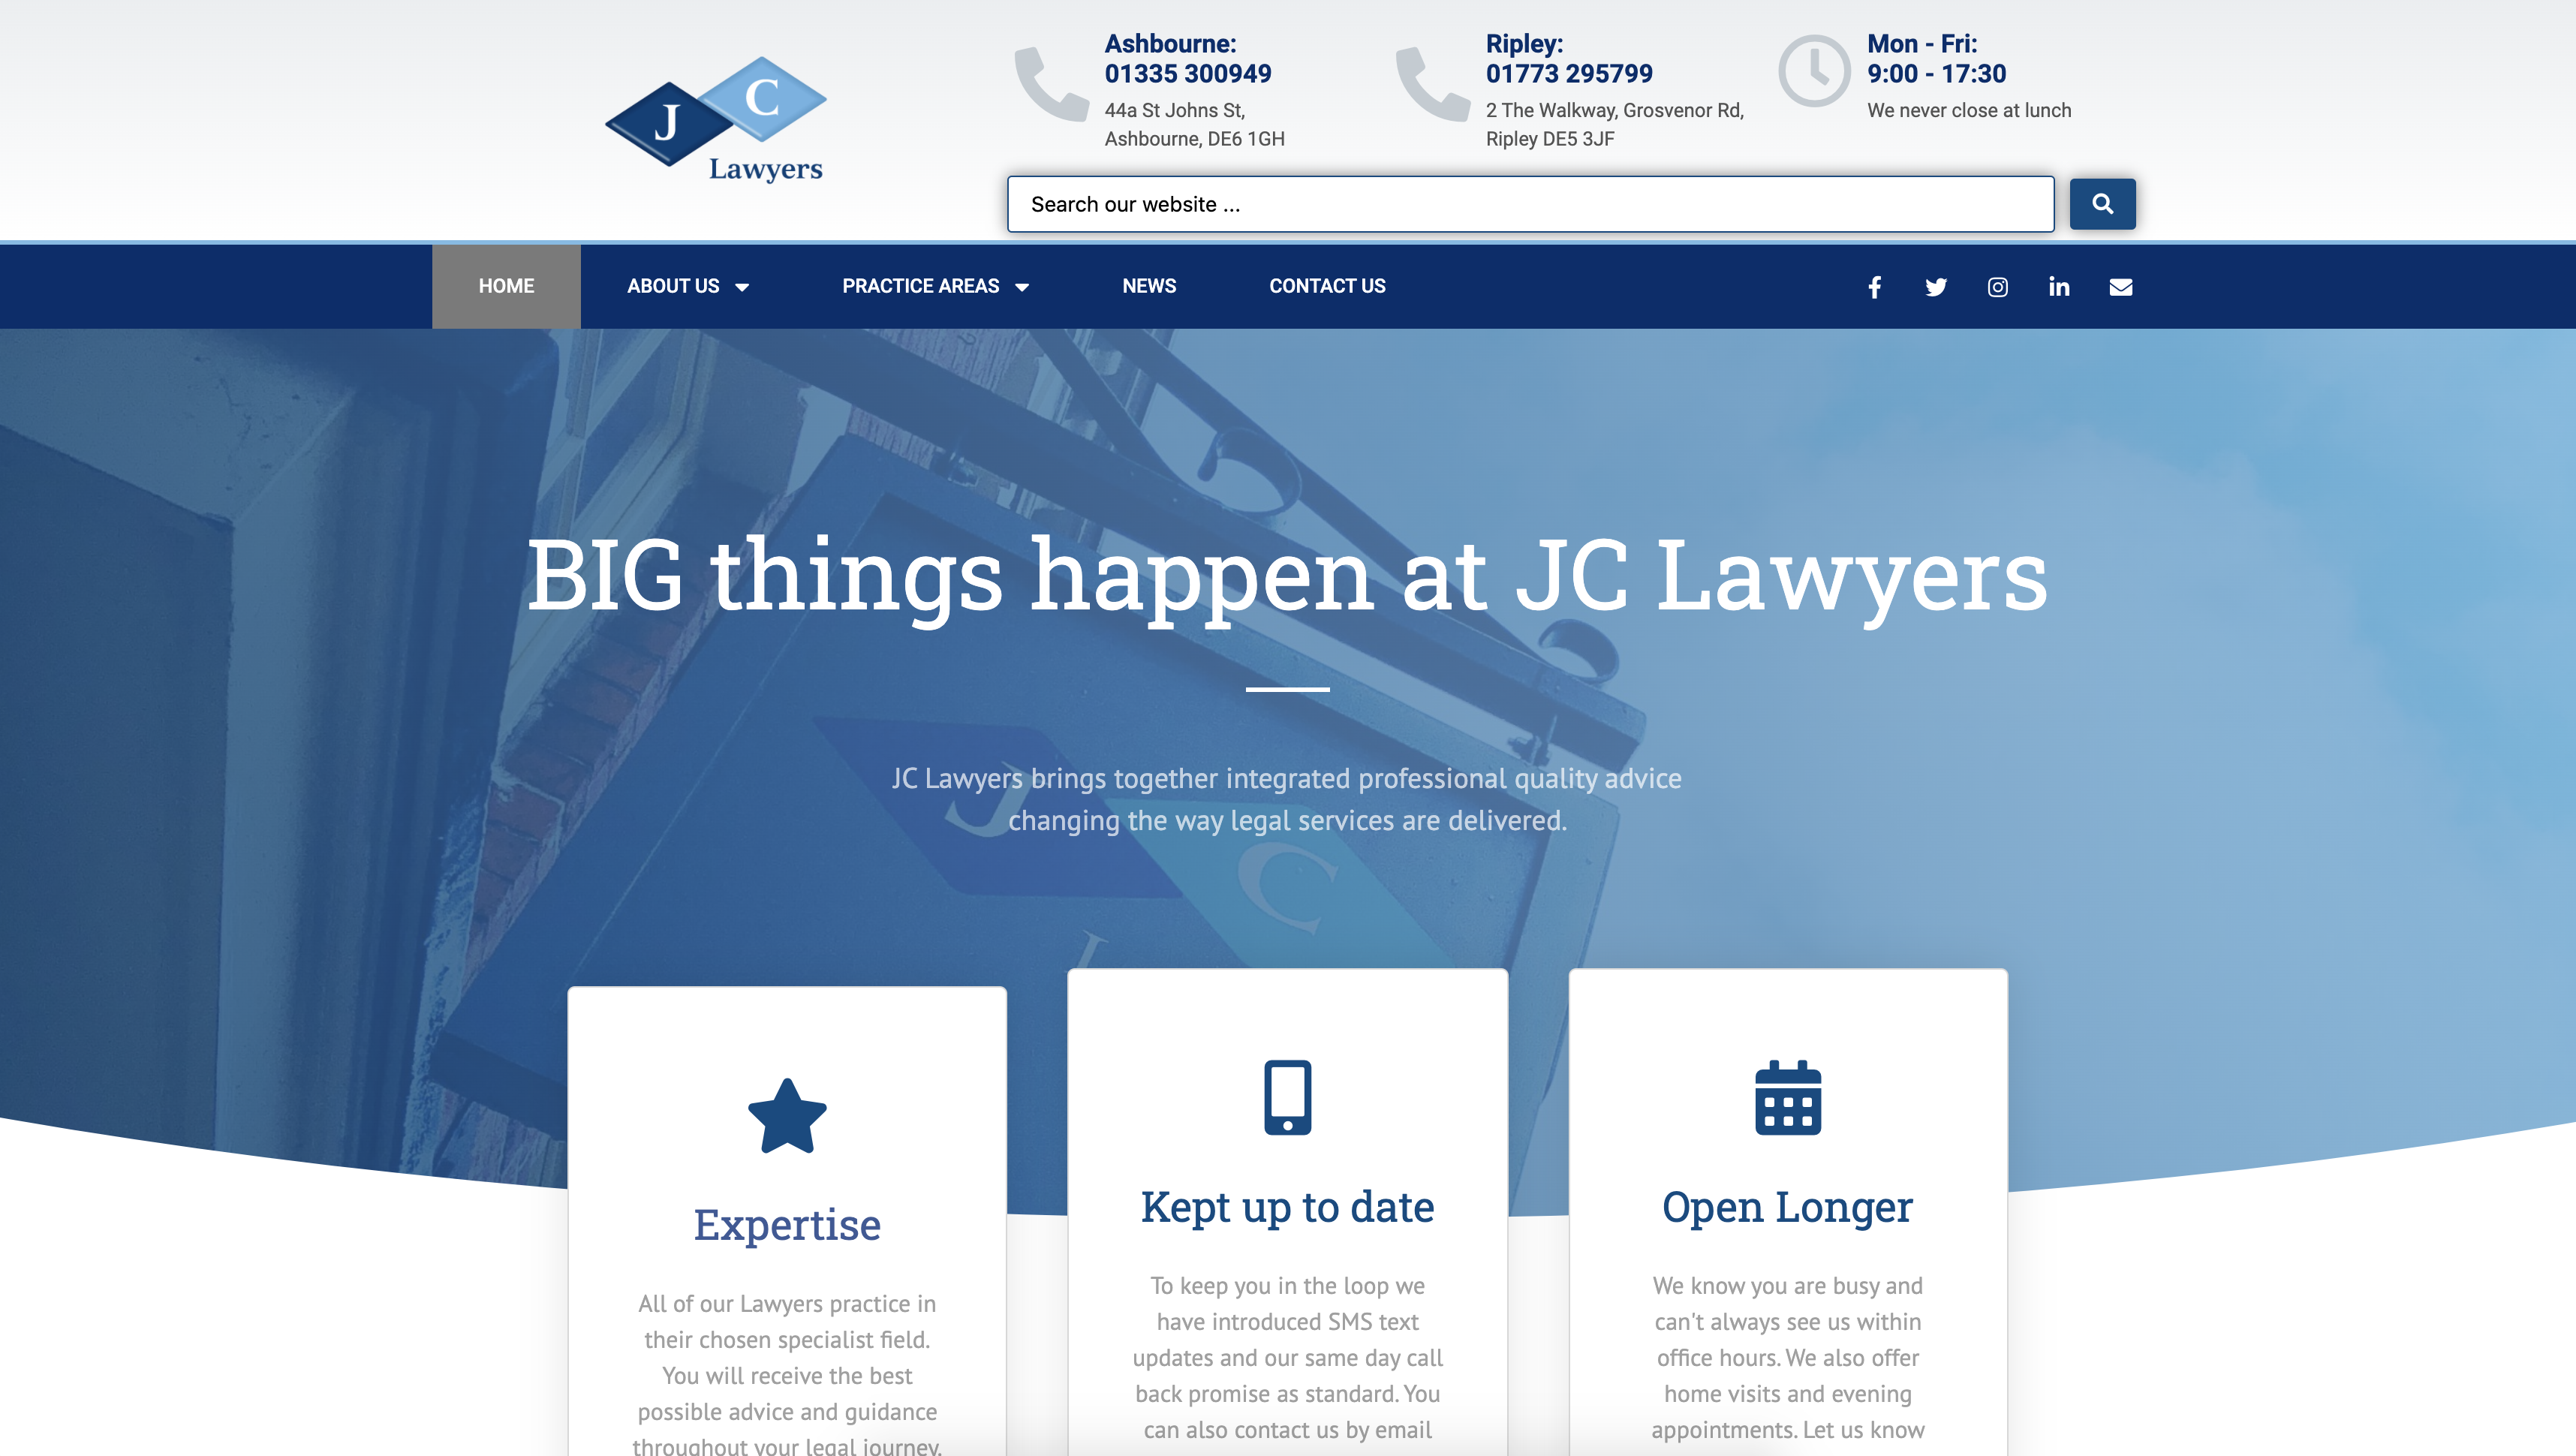 JC Lawyers of Ashbourne and Ripley